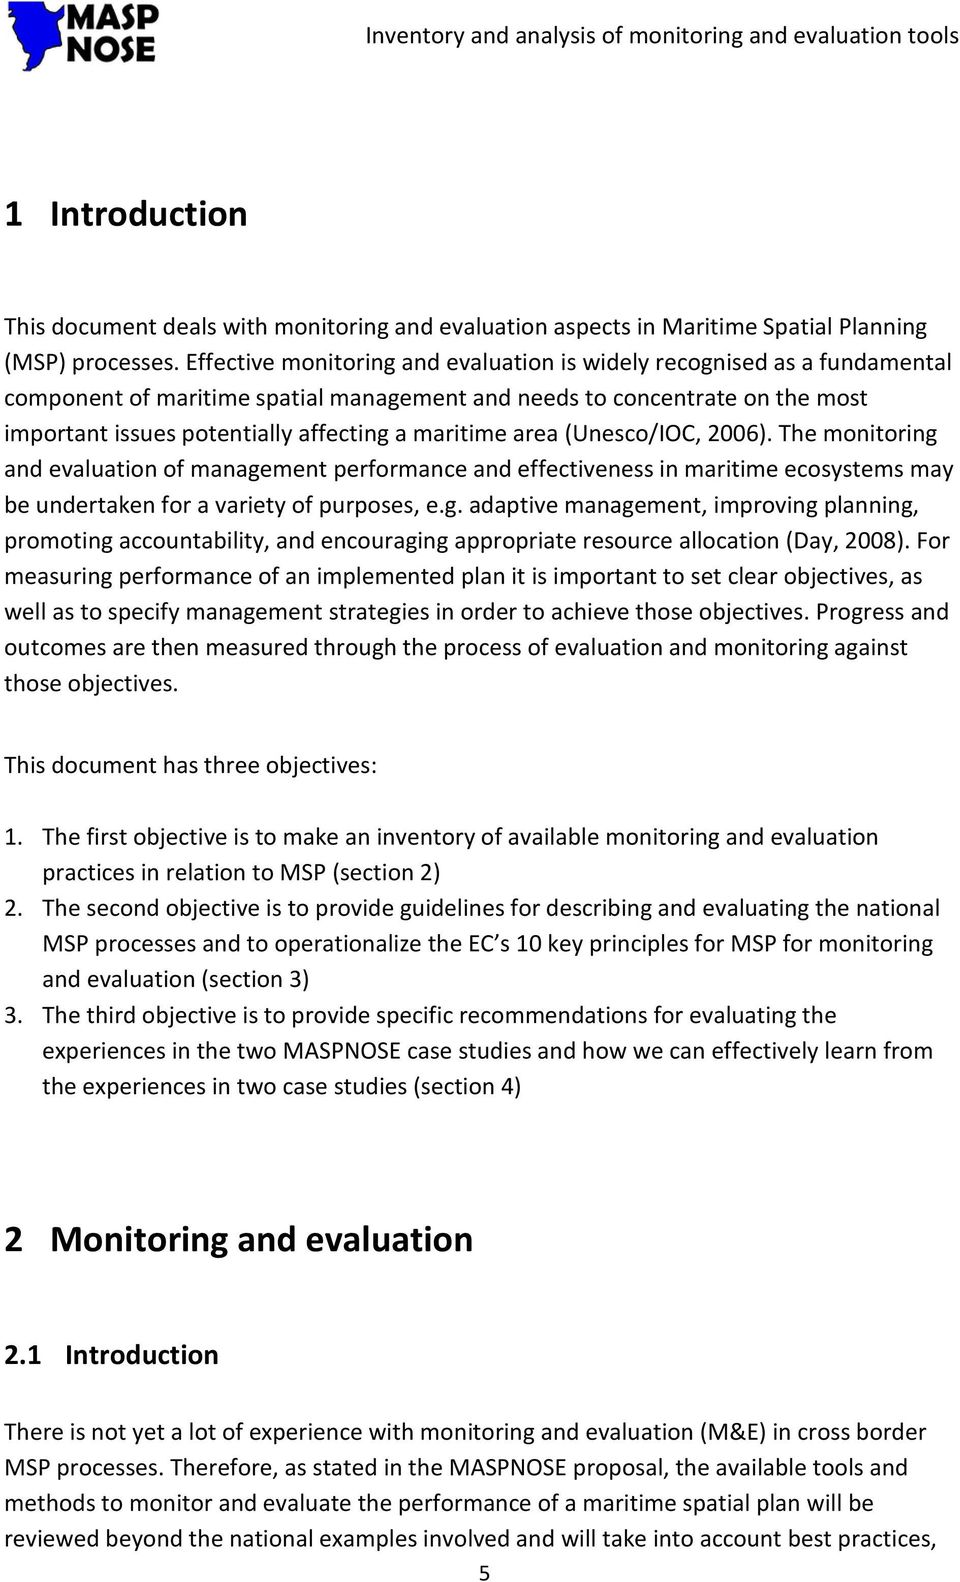 maritime area (Unesco/IOC, 2006). The monitoring and evaluation of management performance and effectiveness in maritime ecosystems may be undertaken for a variety of purposes, e.g. adaptive management, improving planning, promoting accountability, and encouraging appropriate resource allocation (Day, 2008).